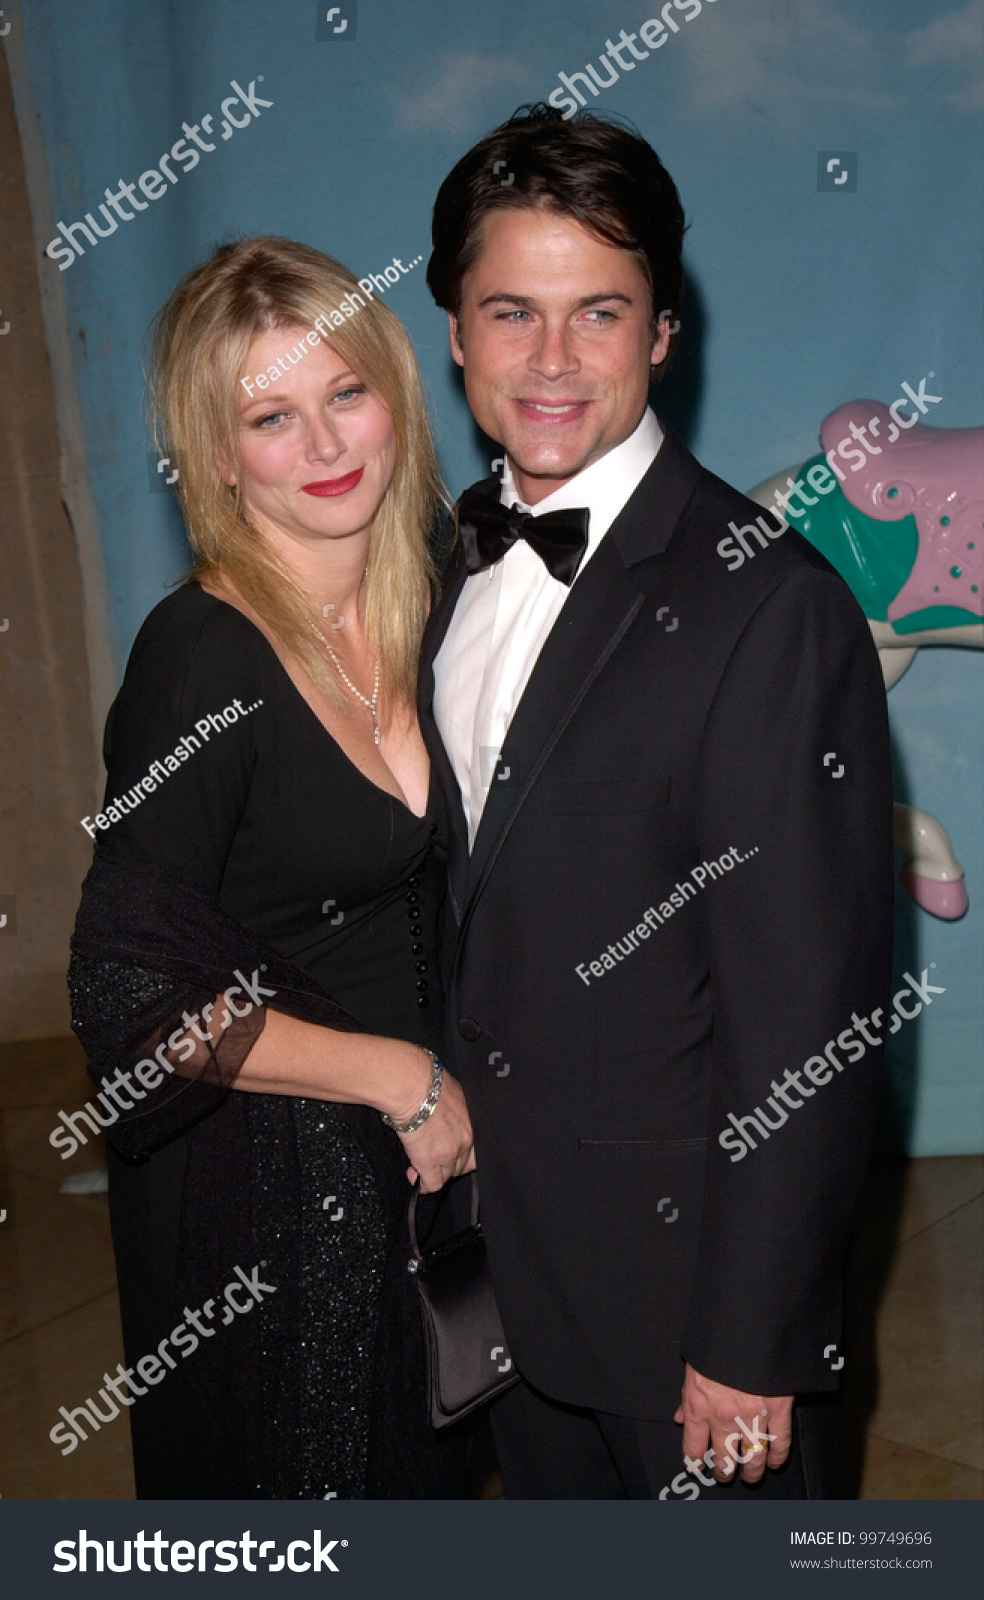 actor rob lowe wife sheryl at the carousel of hope ball. Black Bedroom Furniture Sets. Home Design Ideas